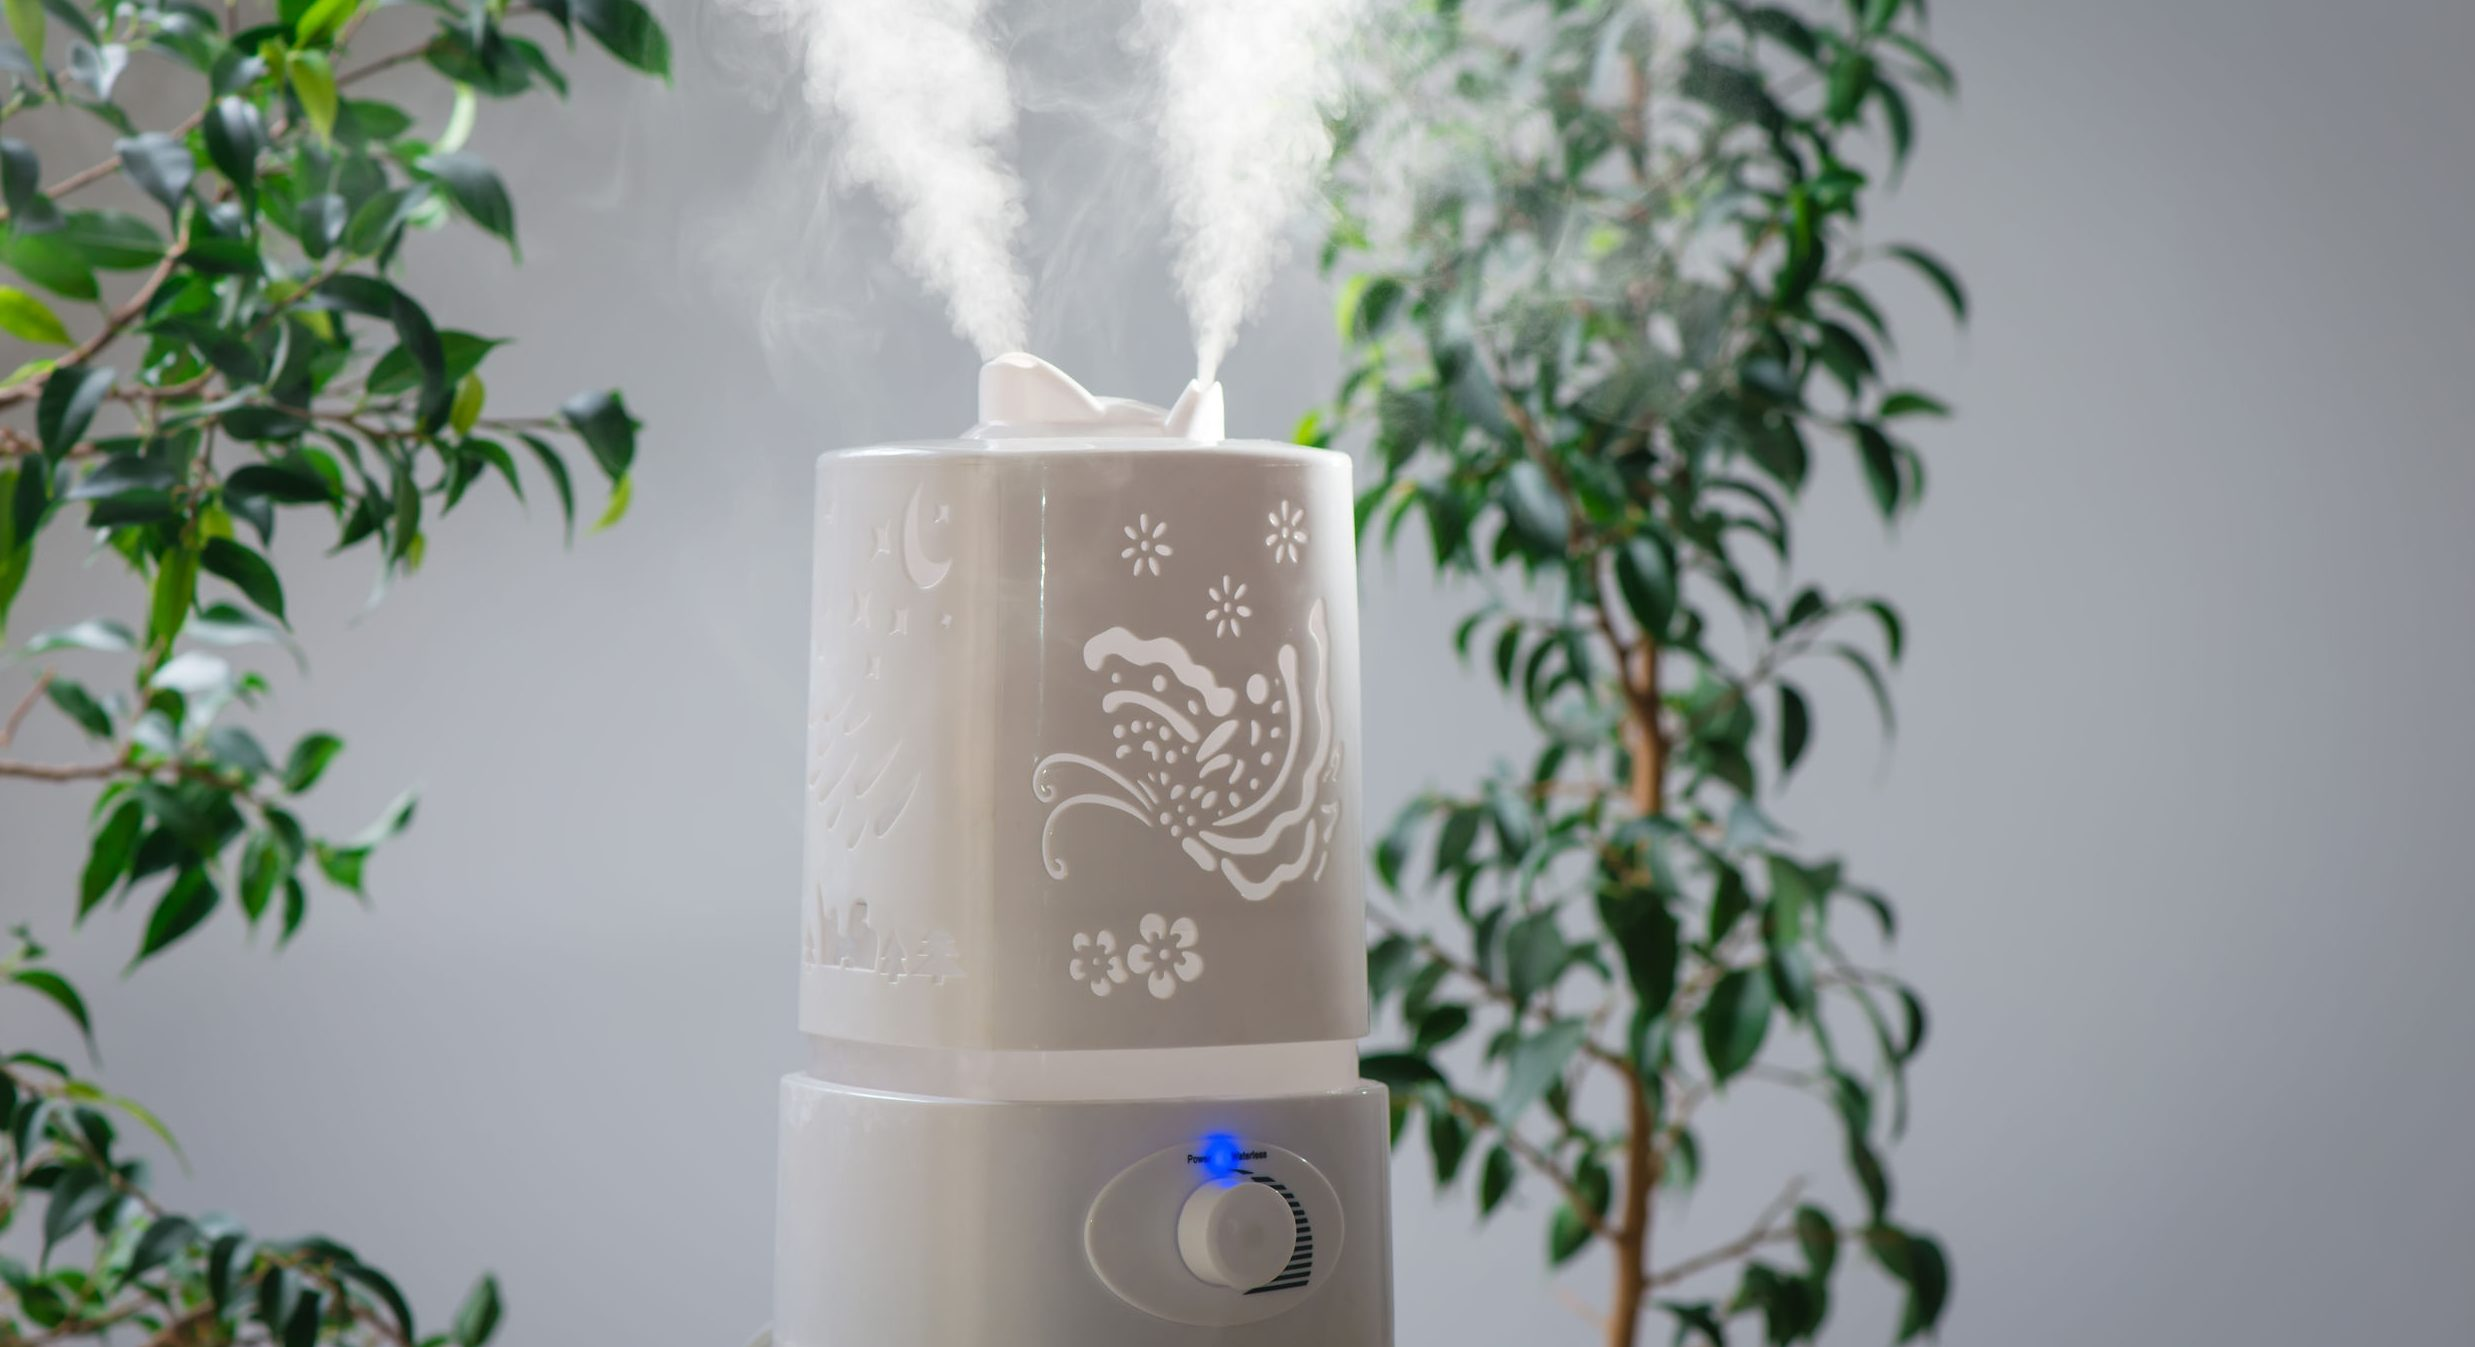 ultrasonic humidifier in the house